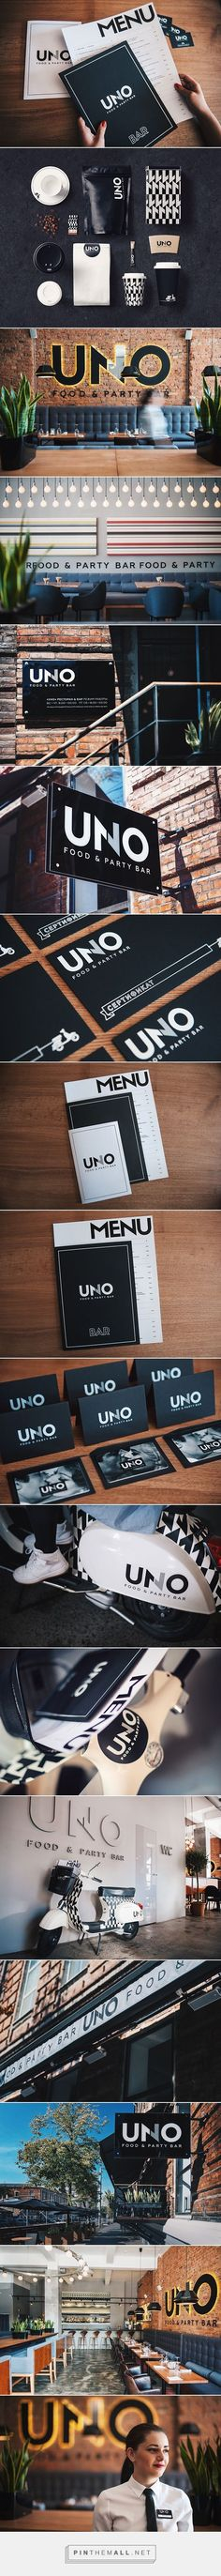 Uno Food and Party Bar on Behance | Fivestar Branding – Design and Branding…